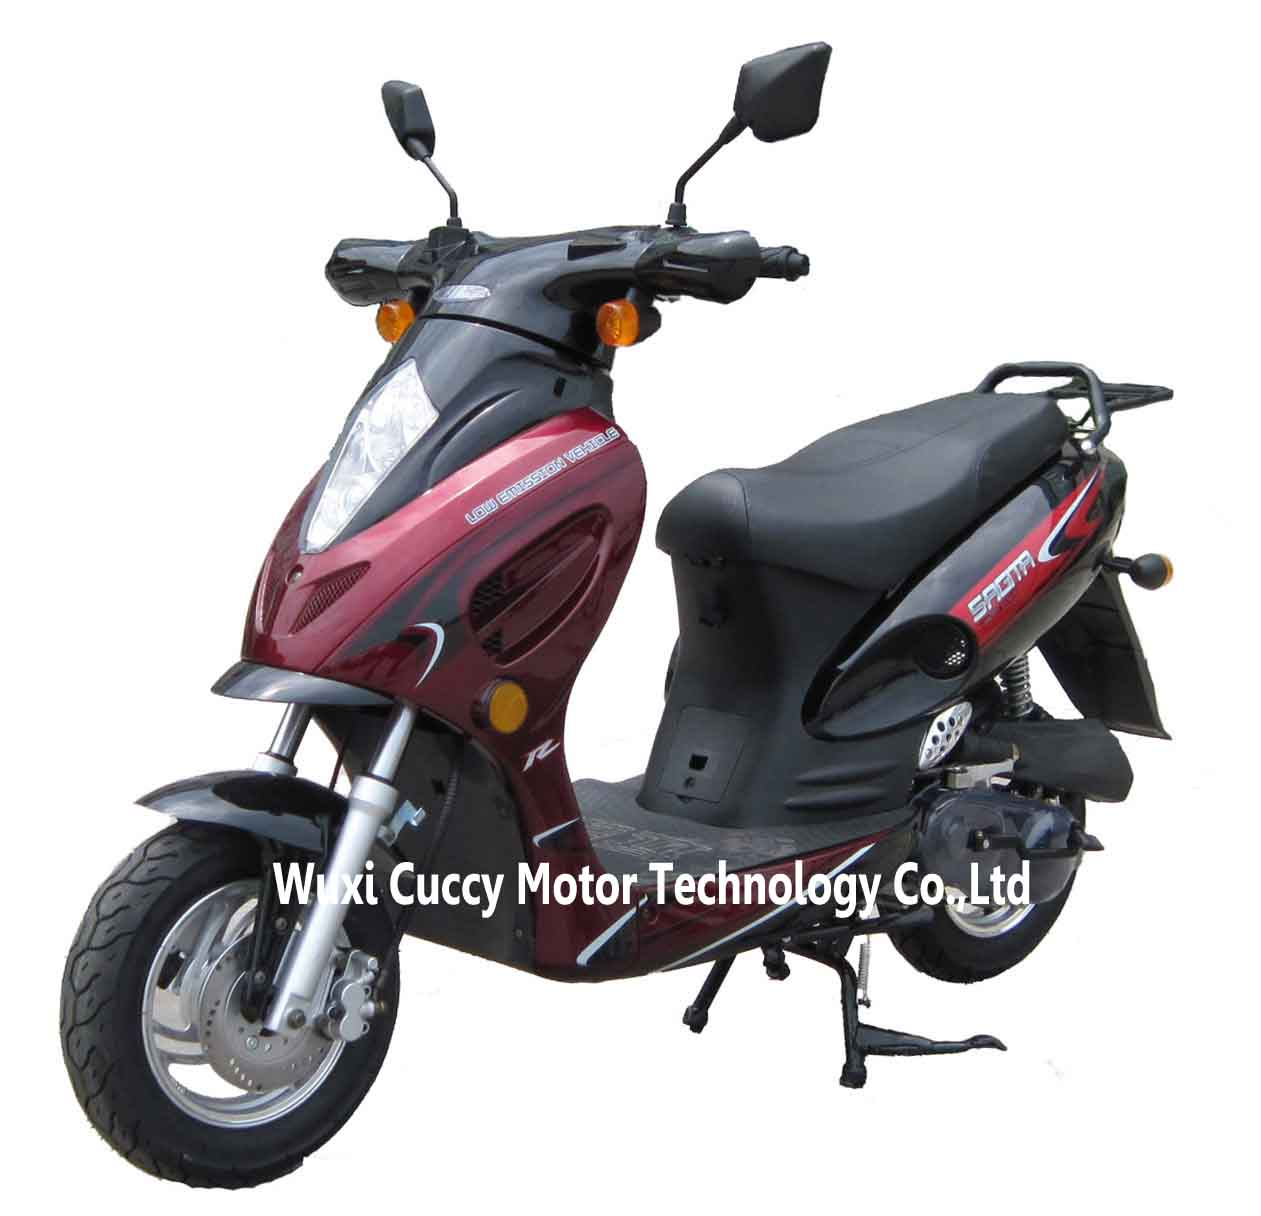 China Chinese Durable Quality Moto Scooters 50cc 49cc 125cc 125 Cc 4 Stroke Gas Scooter Sagita Jiangsu Dalong Jianhao New Energy Industry Co Ltd